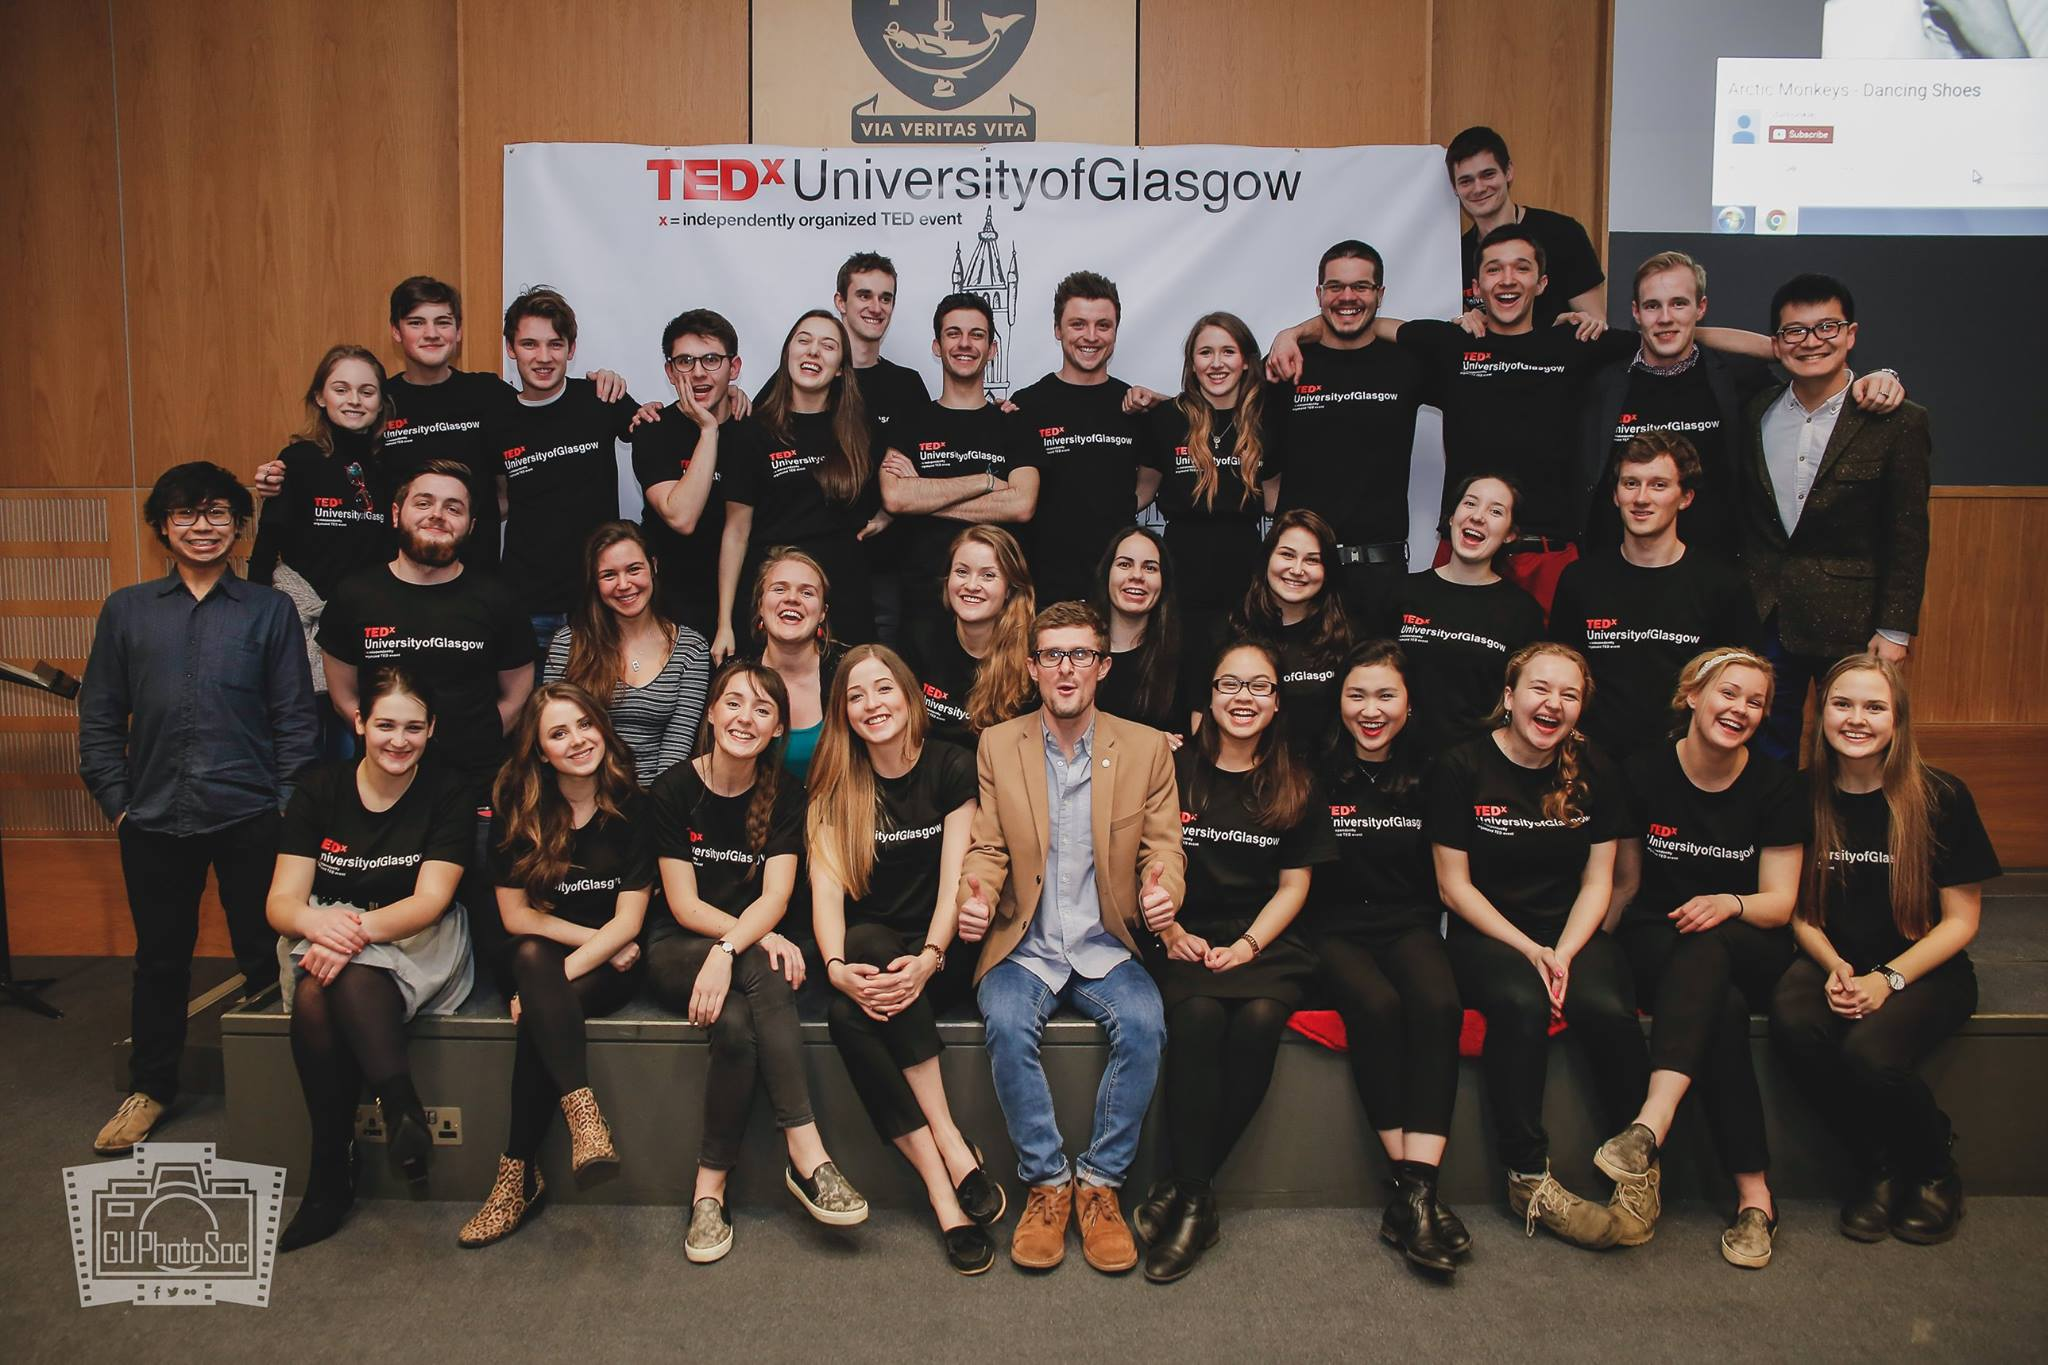 The TedX UofG 2016 team along with Miles Timis. Image credits: GUPhotoSOC